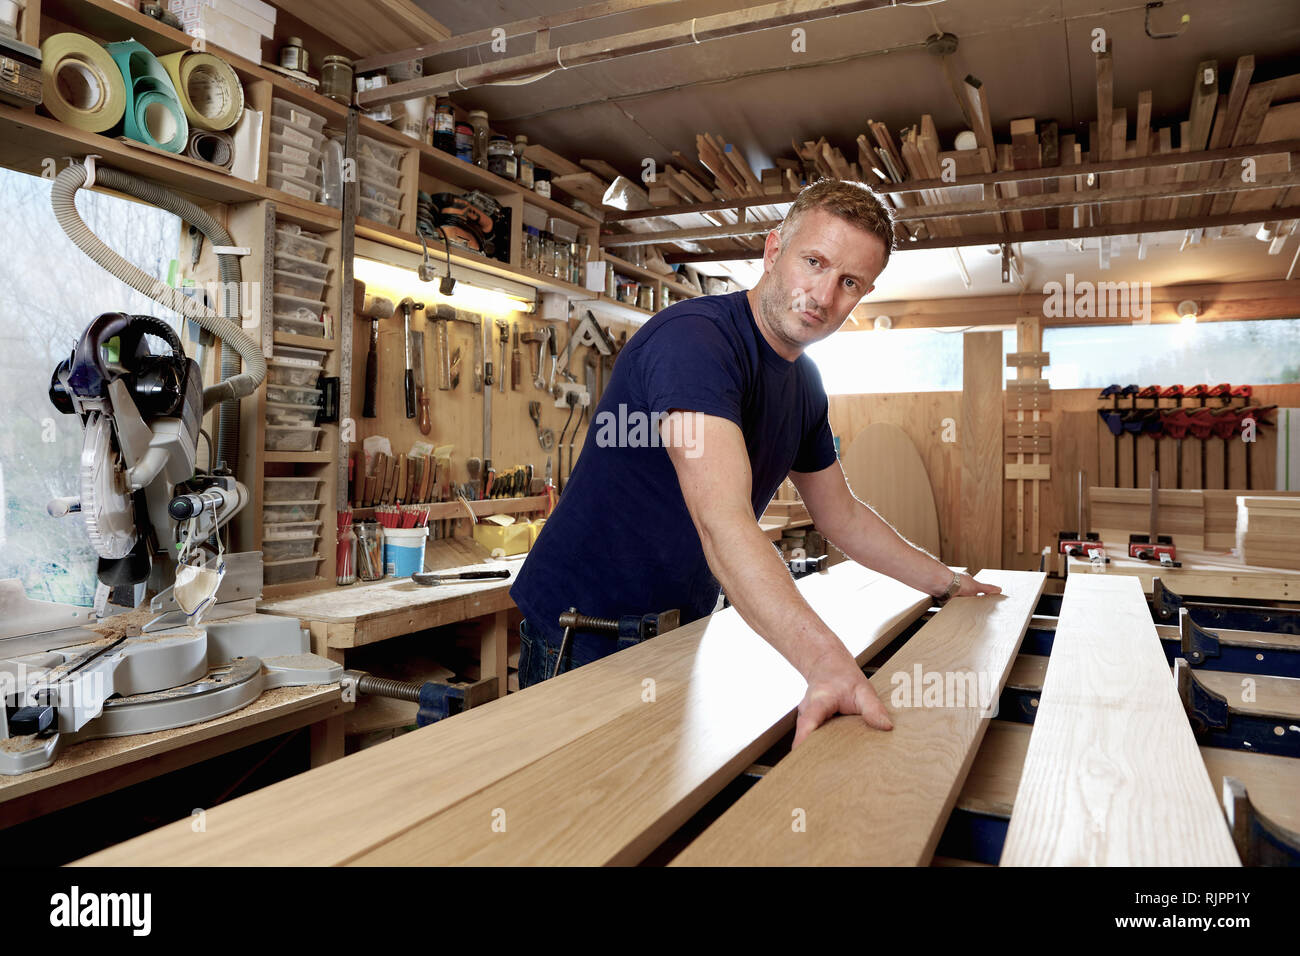 Craftsman preparing planks of wood in workshop - Stock Image